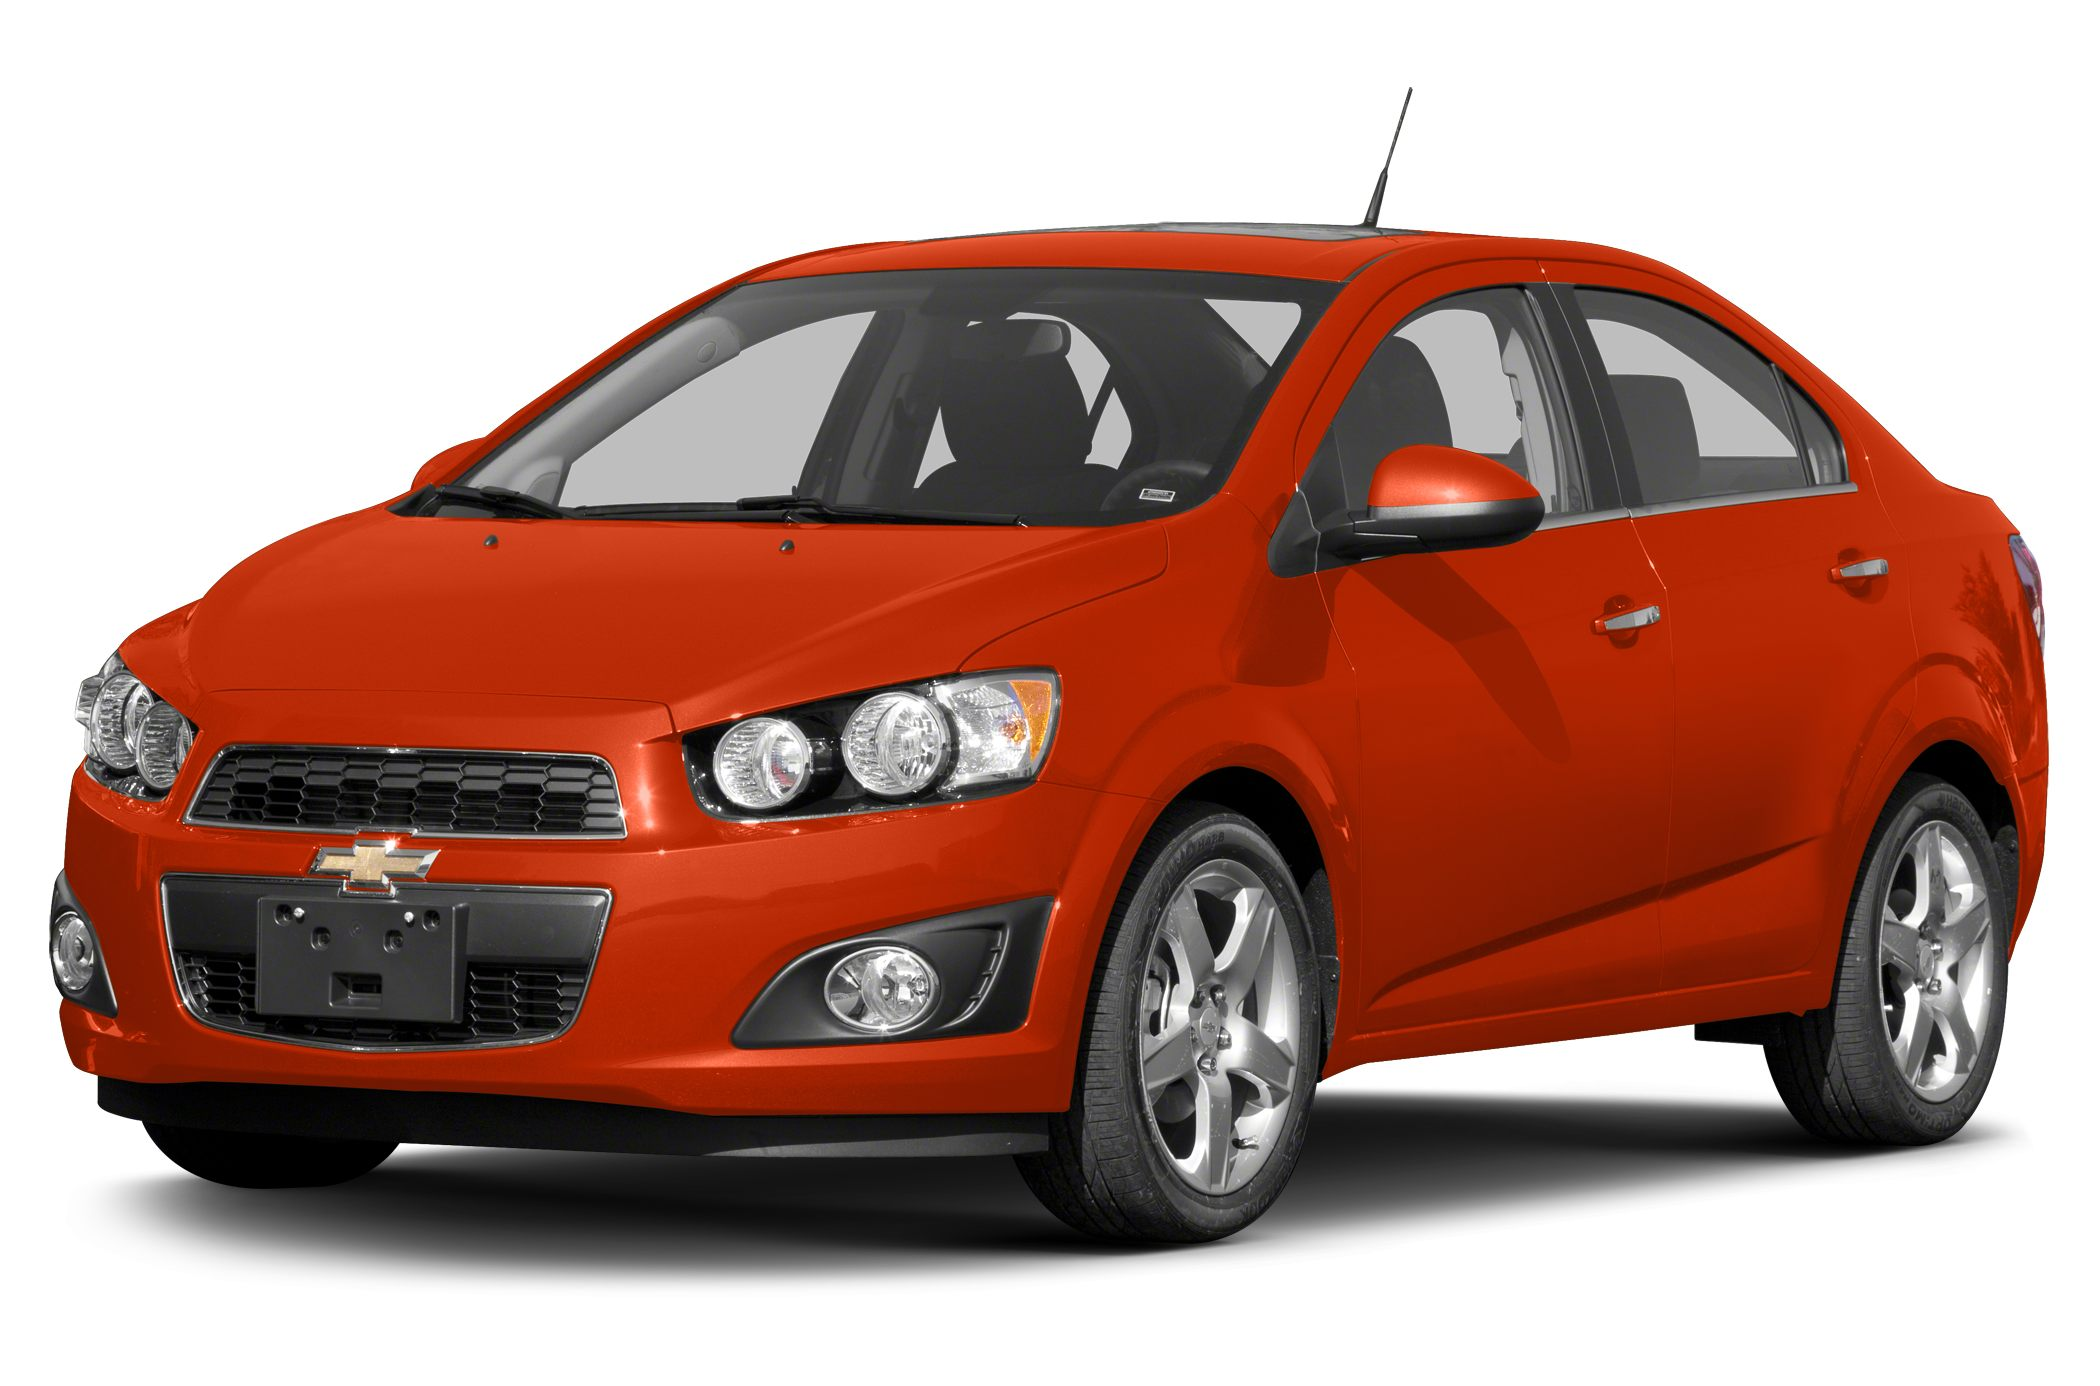 2013 Chevrolet Sonic LT Hatchback for sale in Many for $13,465 with 23,398 miles.